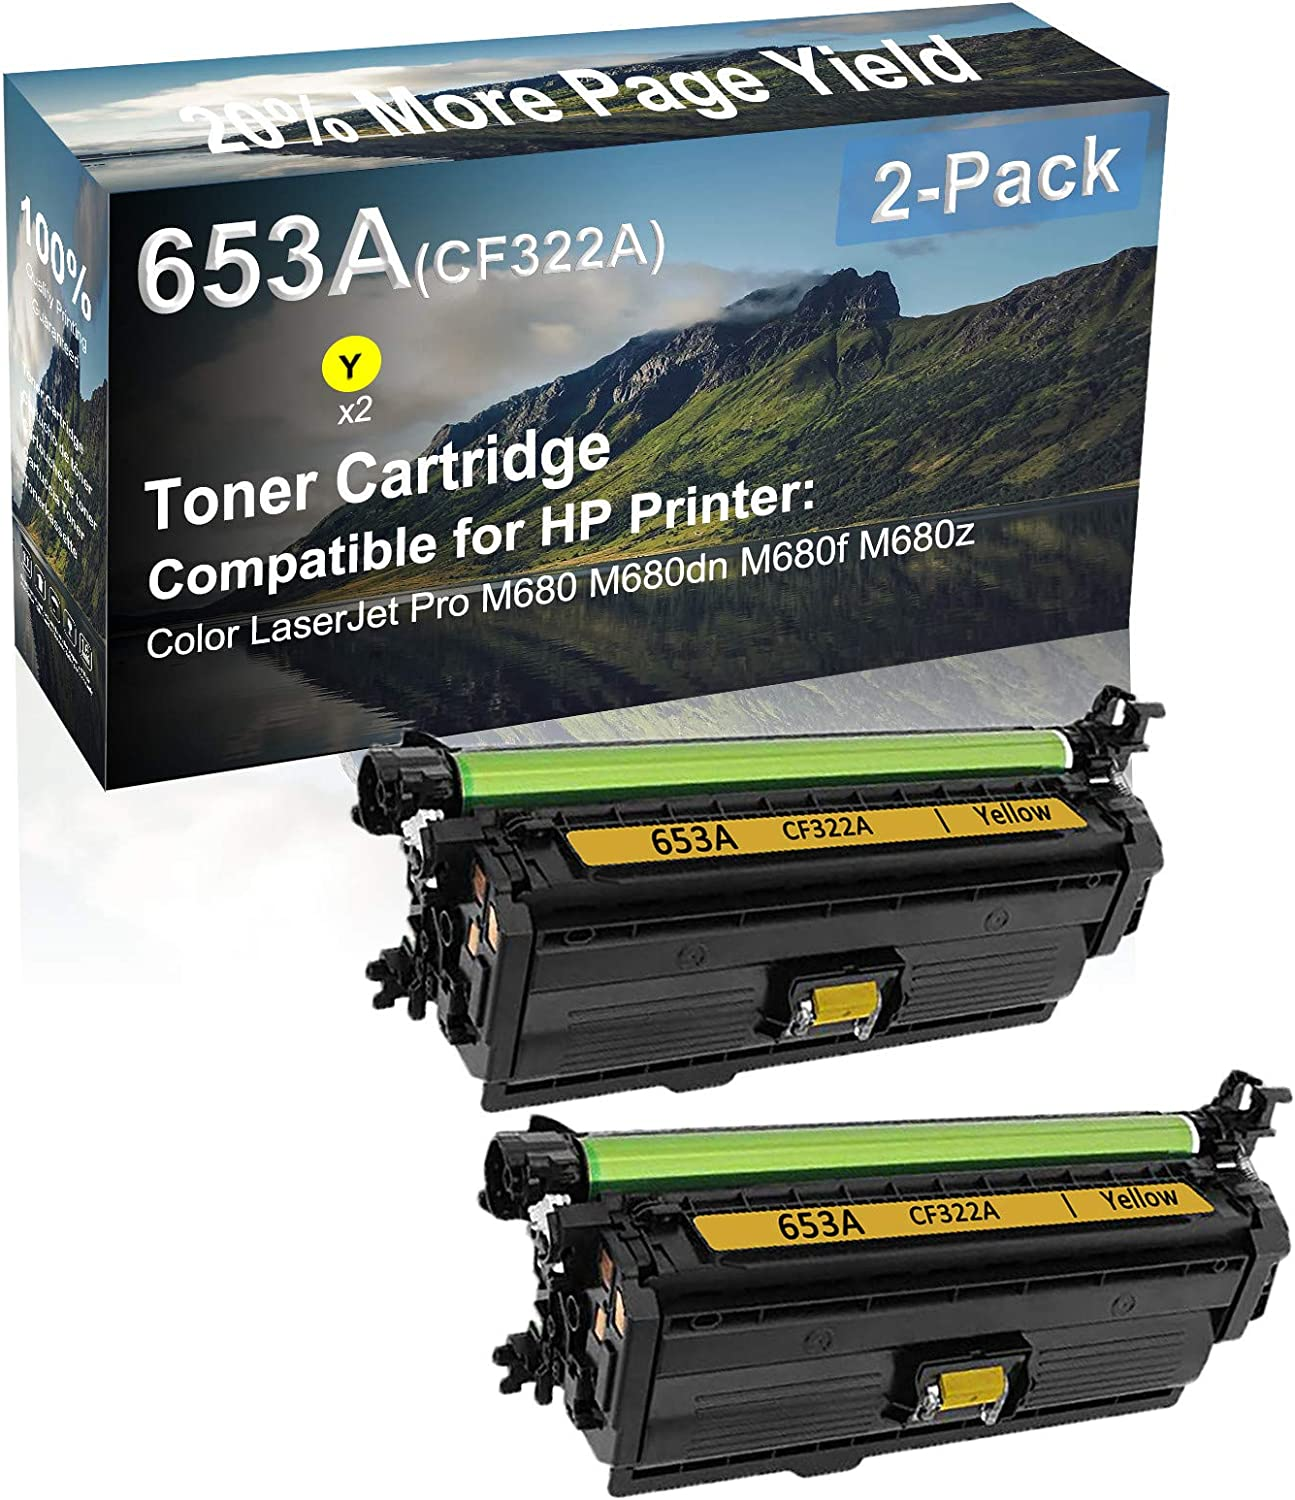 2-Pack (Yellow) Compatible M680 M680dn M680f M680z Printer Toner Cartridge High Capacity Replacement for HP (CF322A) 653A Toner Cartridge